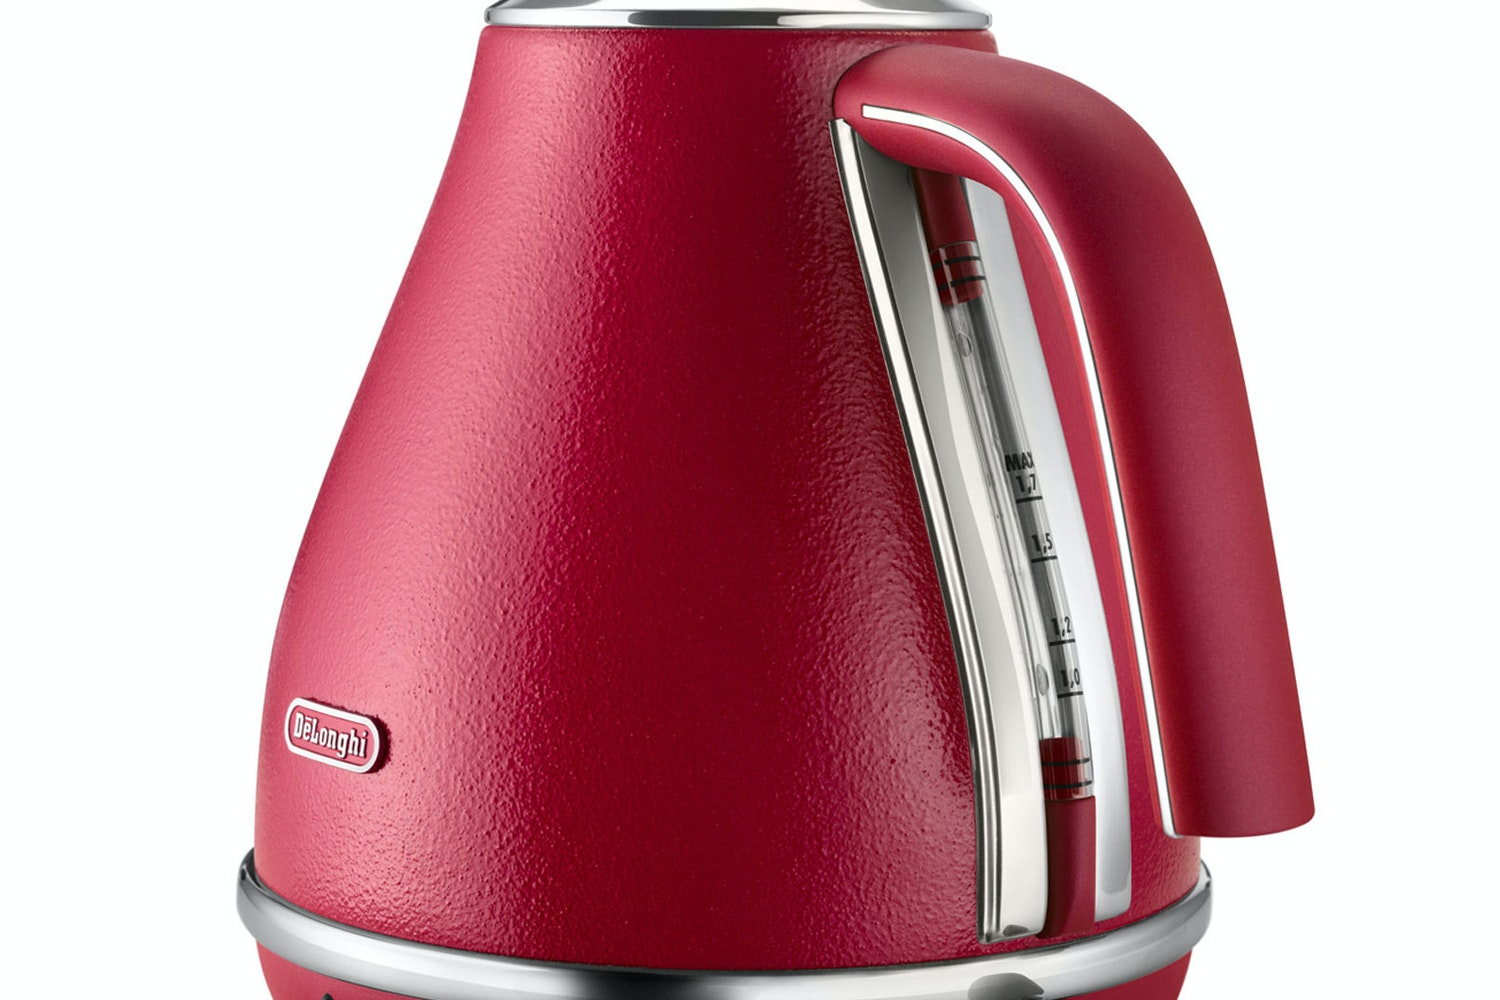 Delonghi White 1.7L Kettle | KBOE3001.R